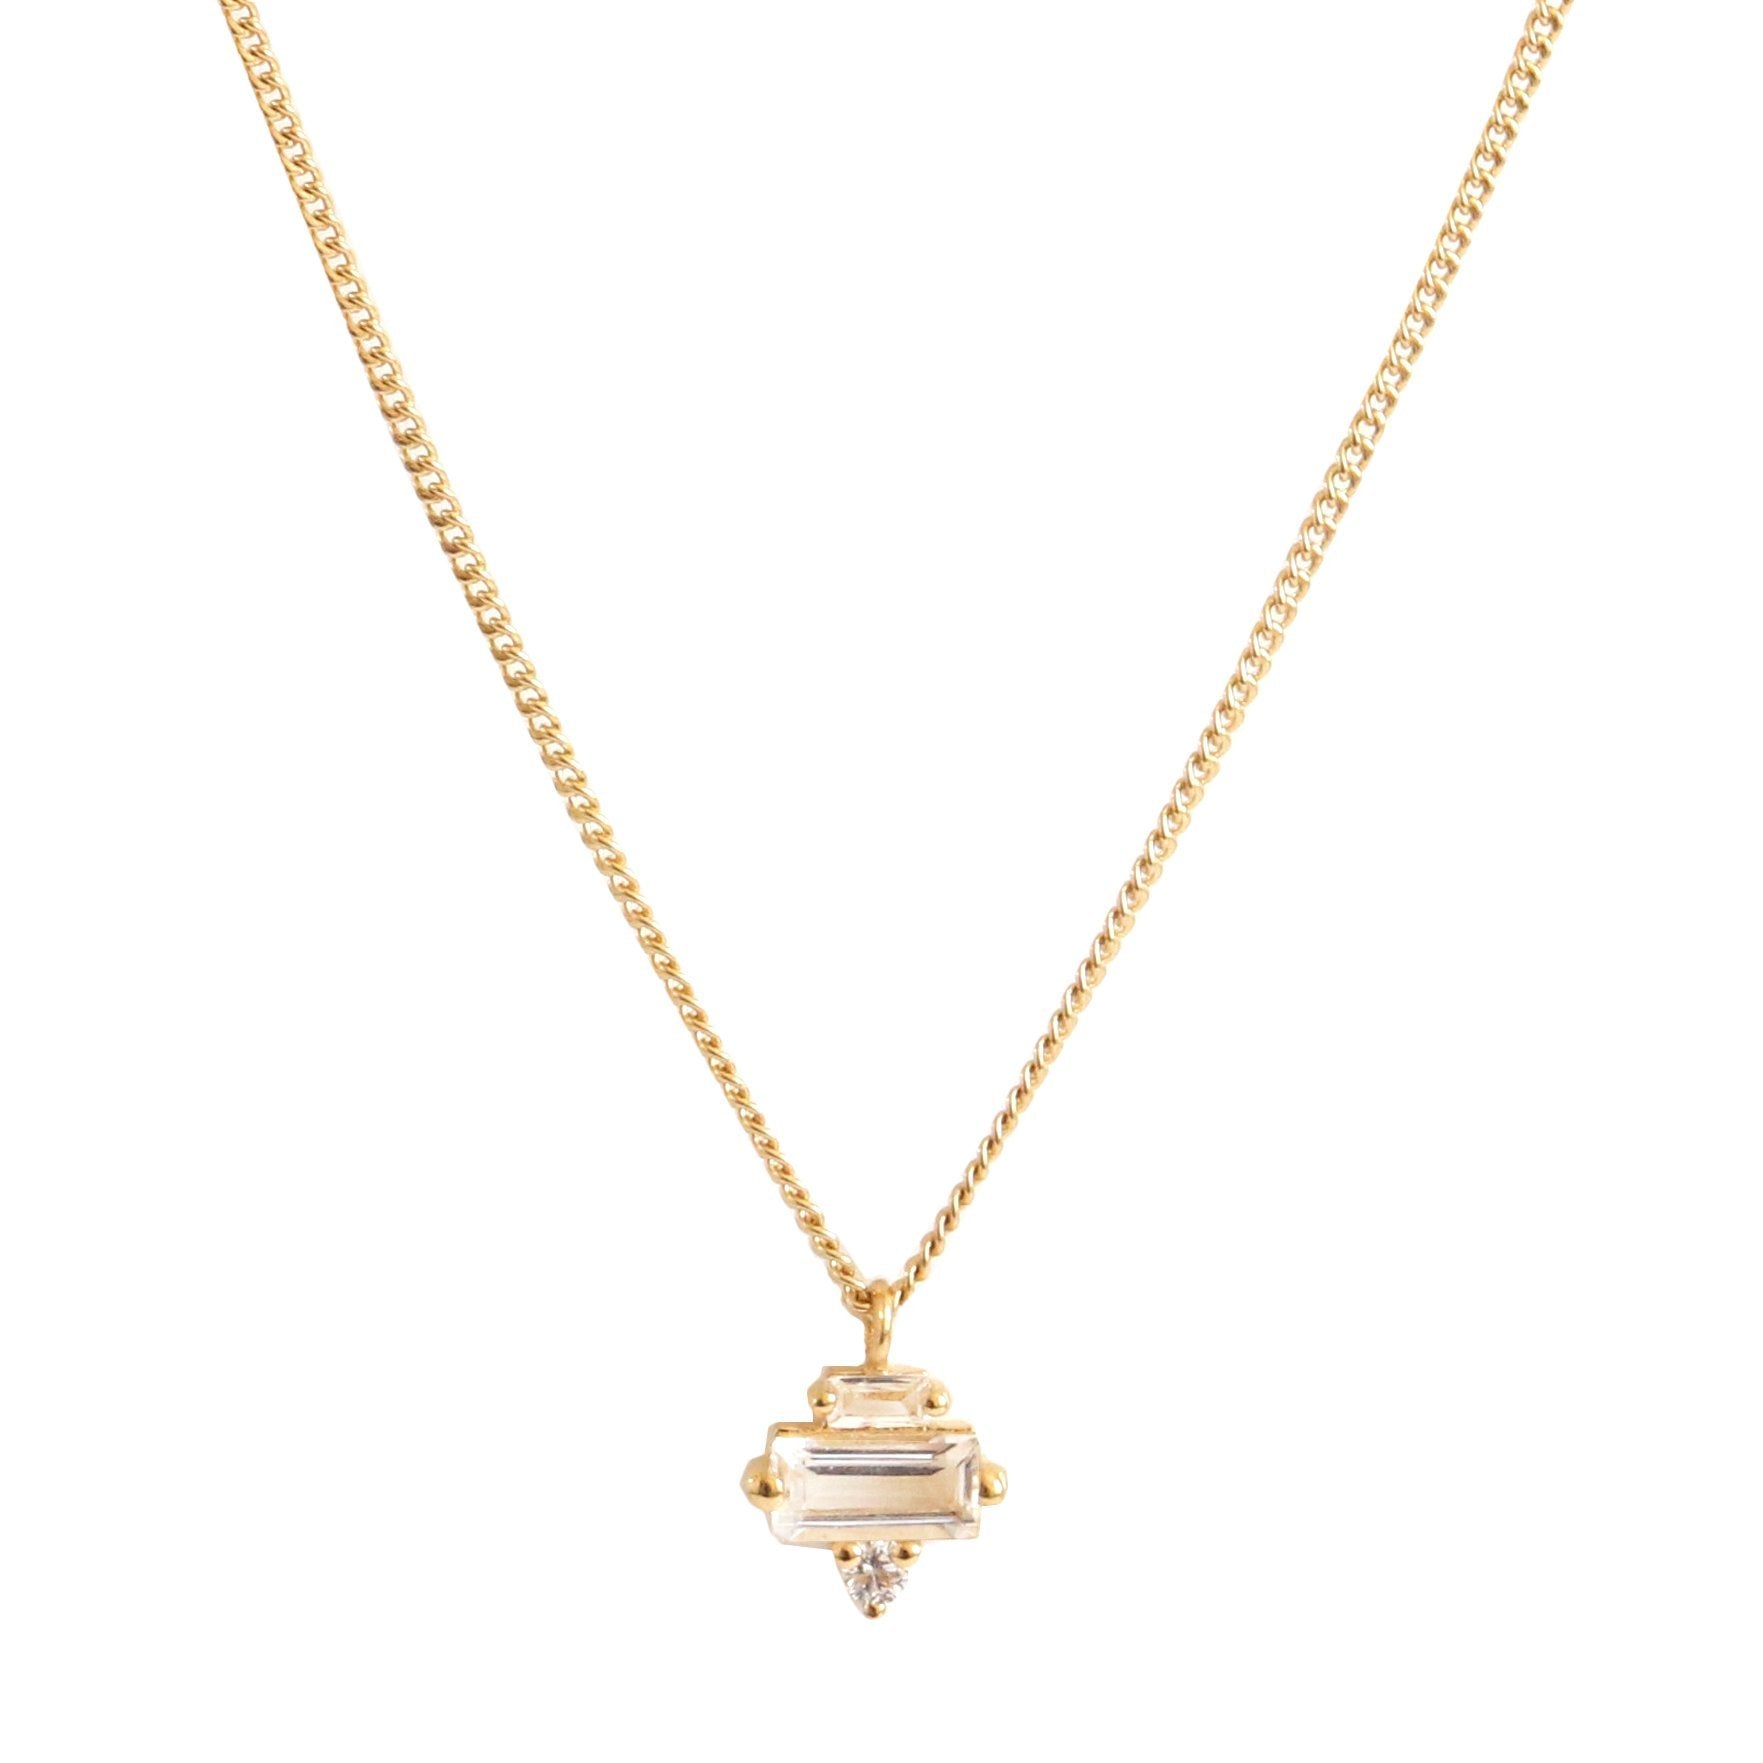 Tiny Loyal Prism Necklace - White Topaz, Cubic Zirconia & Gold - SO PRETTY CARA COTTER